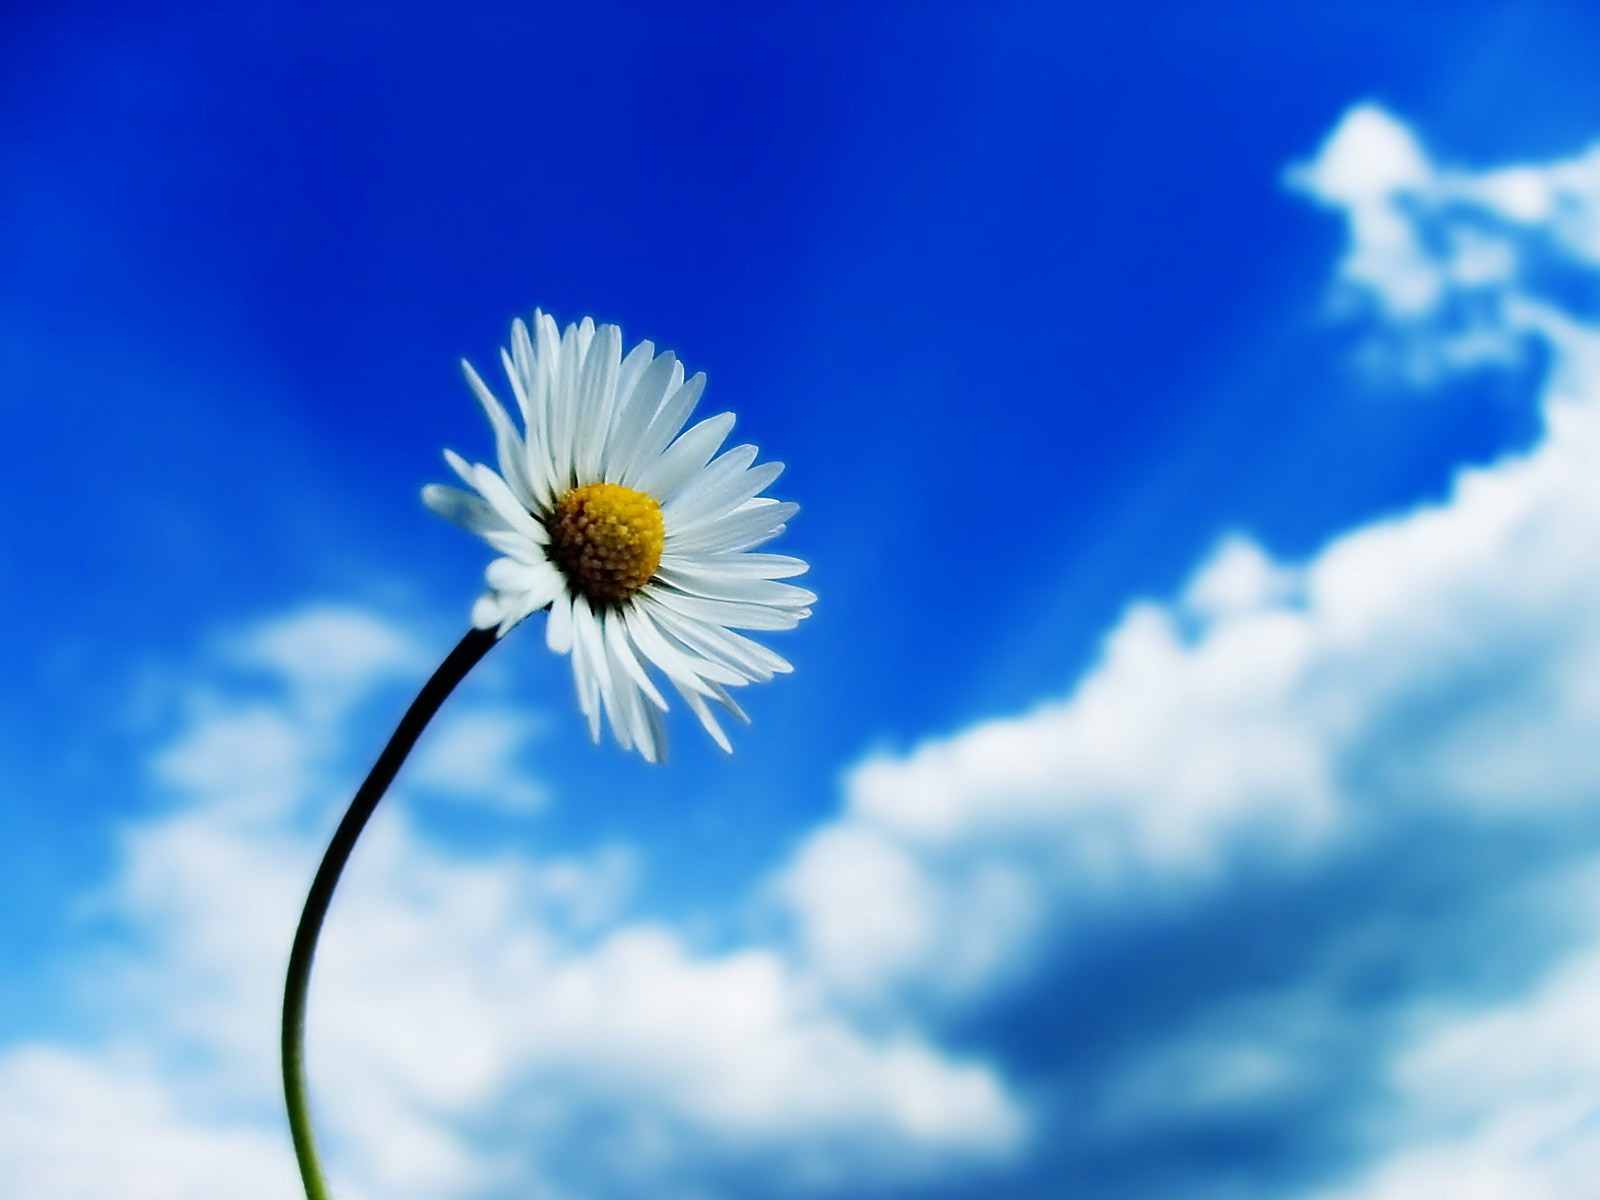 White-flower-and-blue-sky.jpg